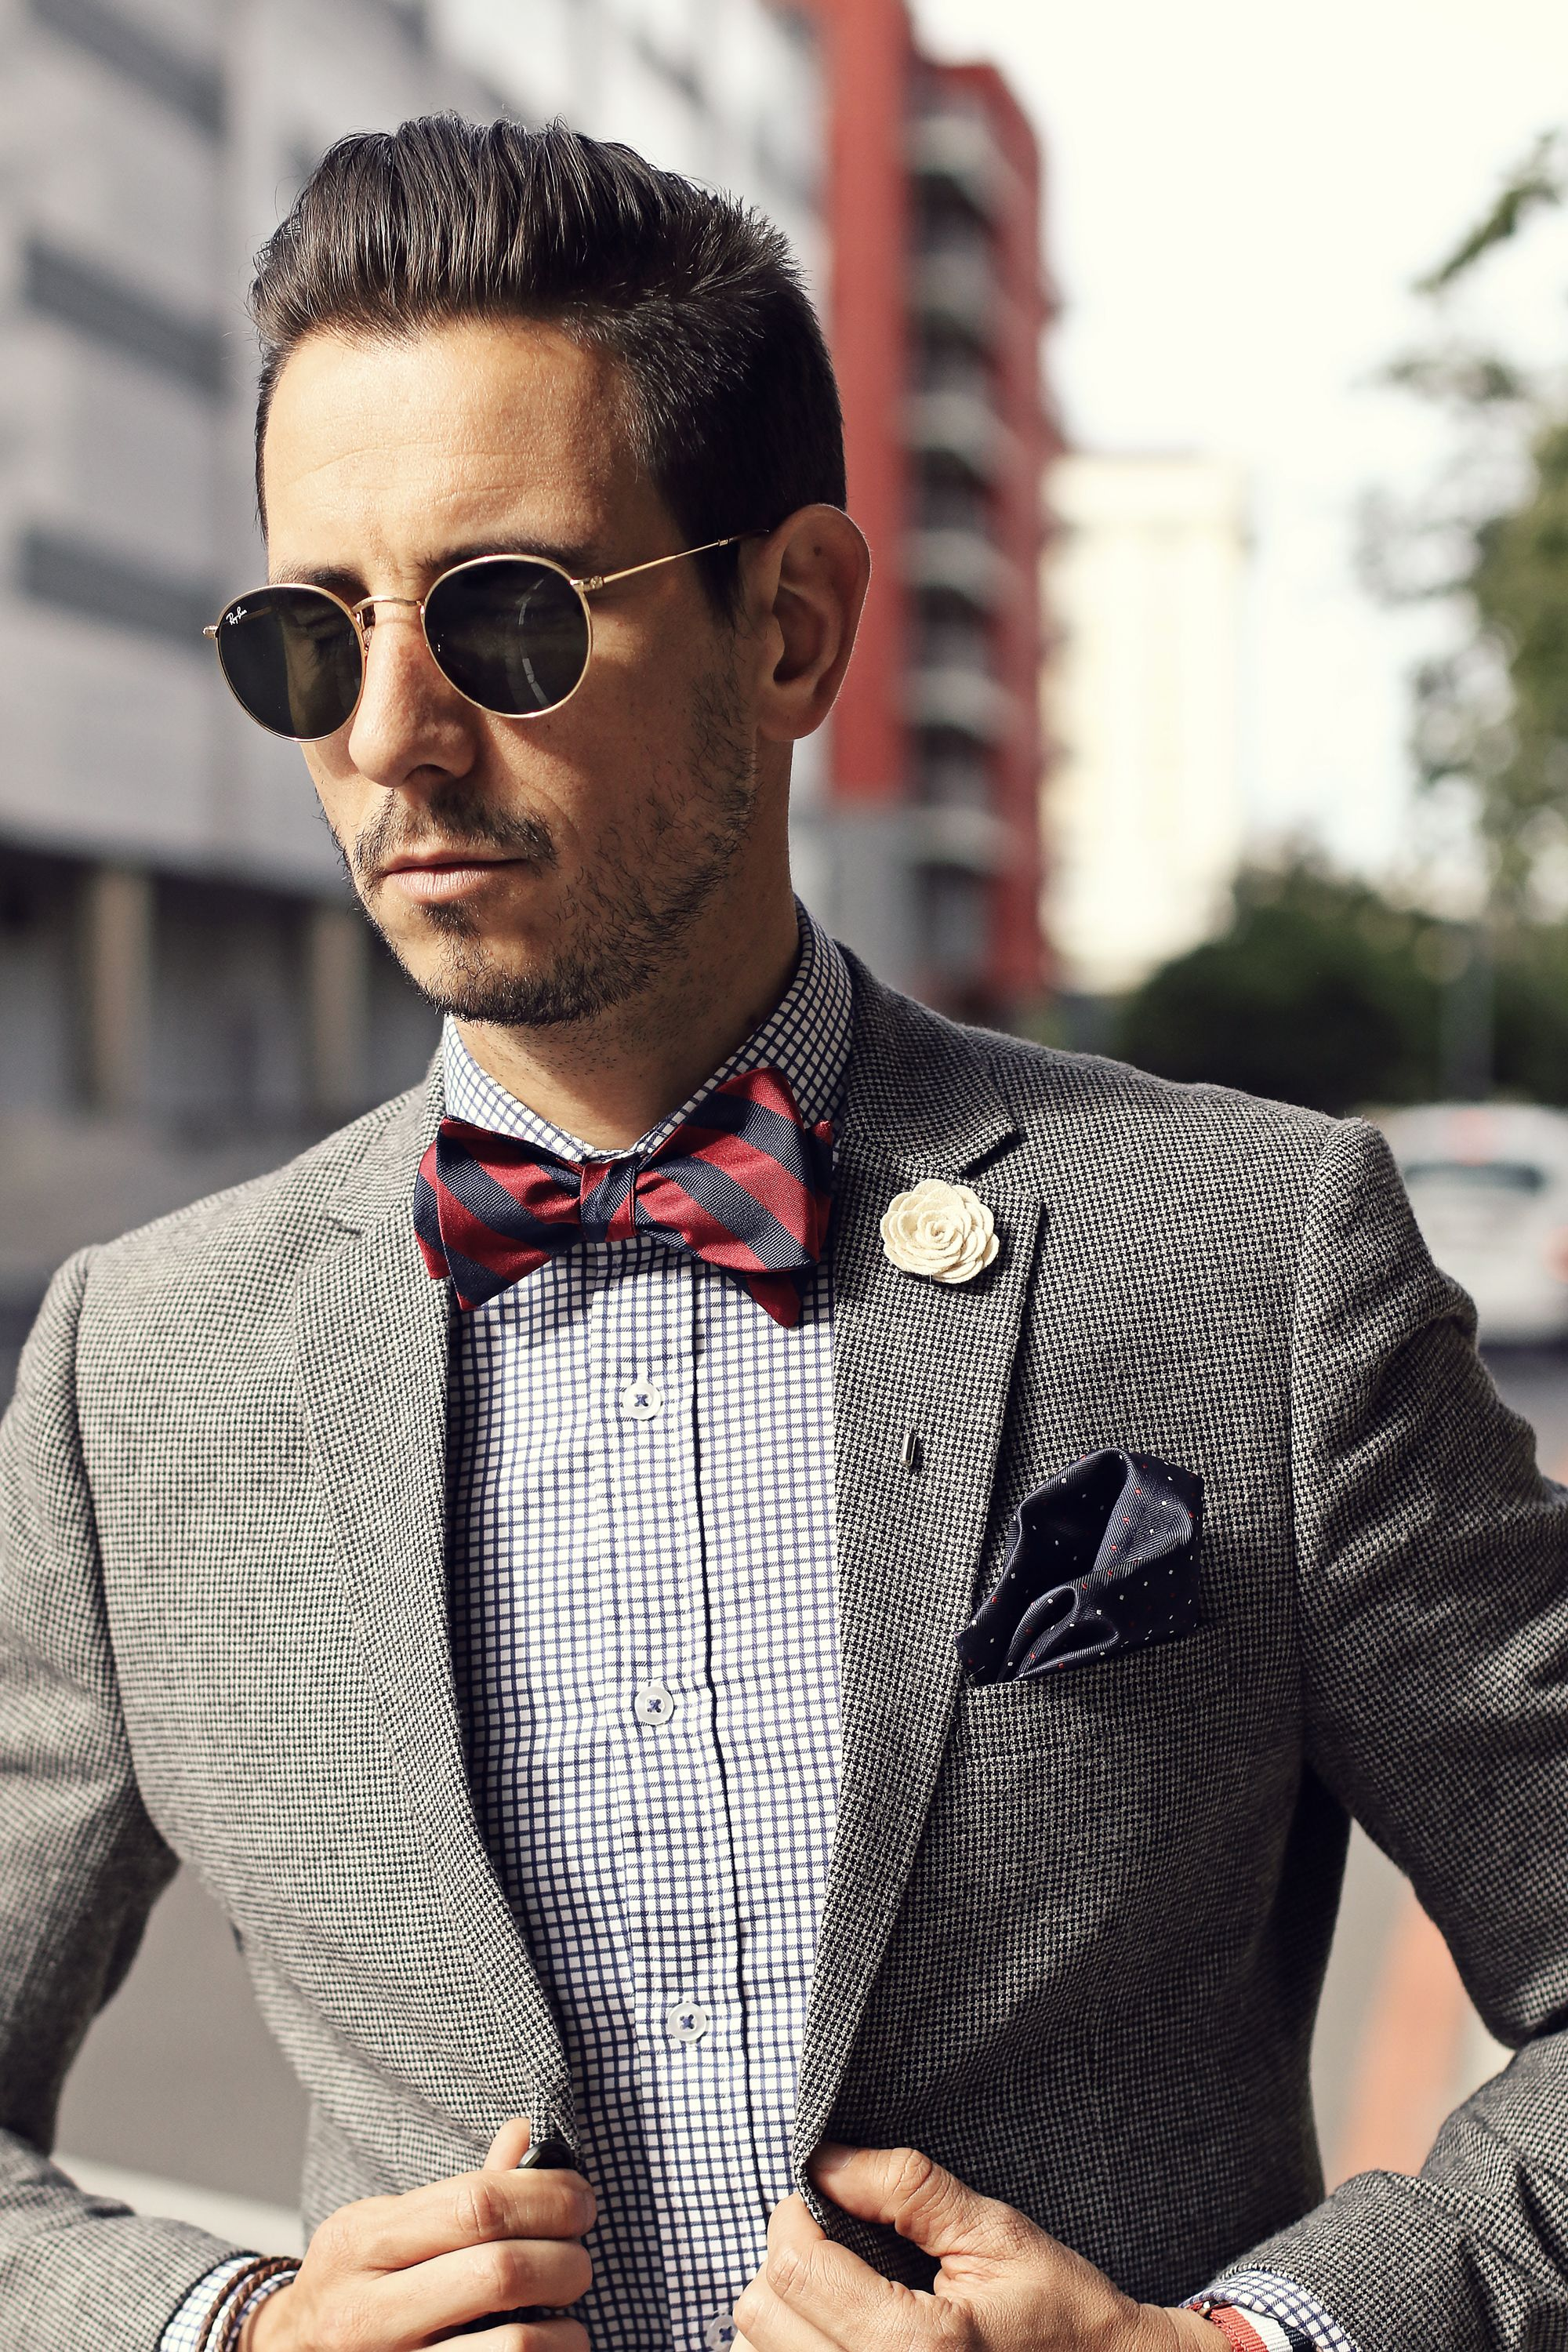 Mens fashion ray ban sunglasses blue suit white and black mens fashion grey blazer checked shirt red and navy bow tie white dhlflorist Choice Image